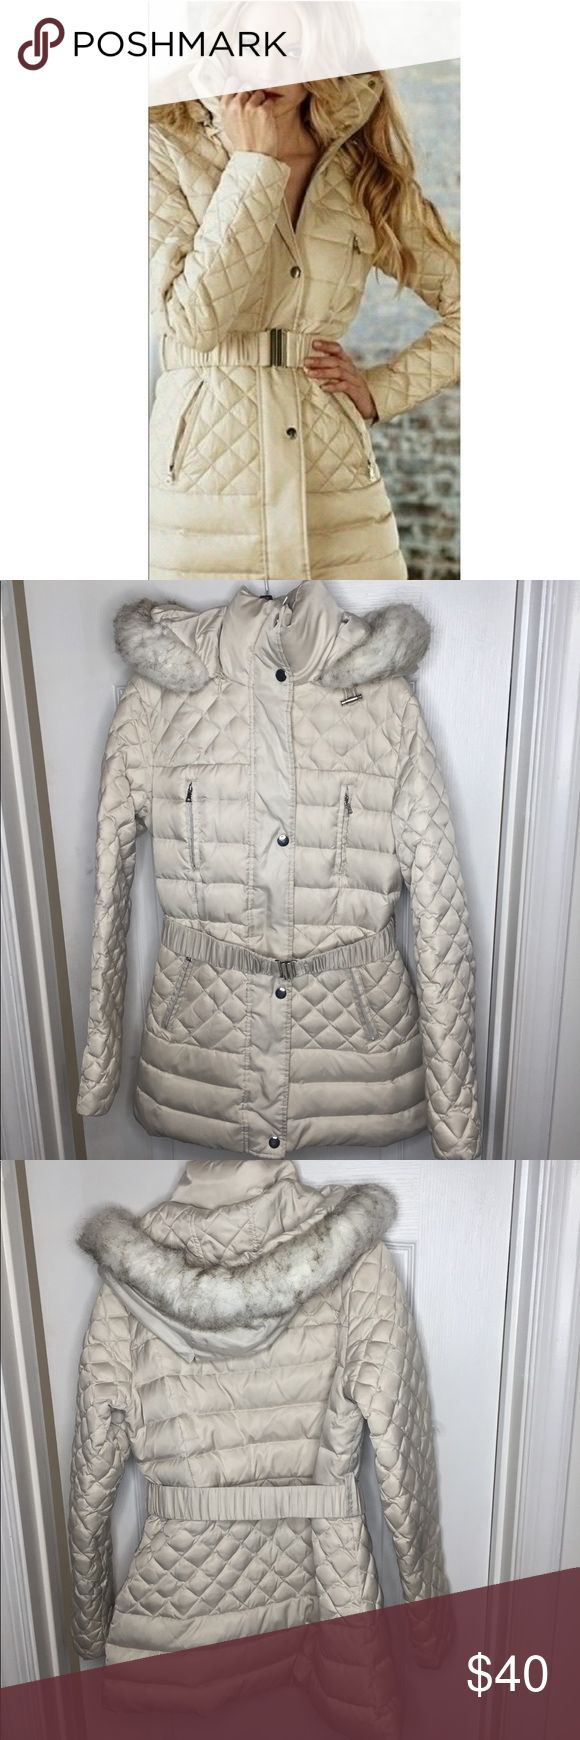 Moda International Victoria's Secret Puffer jacket Like new super warm puffer jacket perfect for the cold months. Can be worn casually or to a nice event. Faux fur hood and belt included. Form fitting and flattering. Moda International Jackets & Coats Puffers